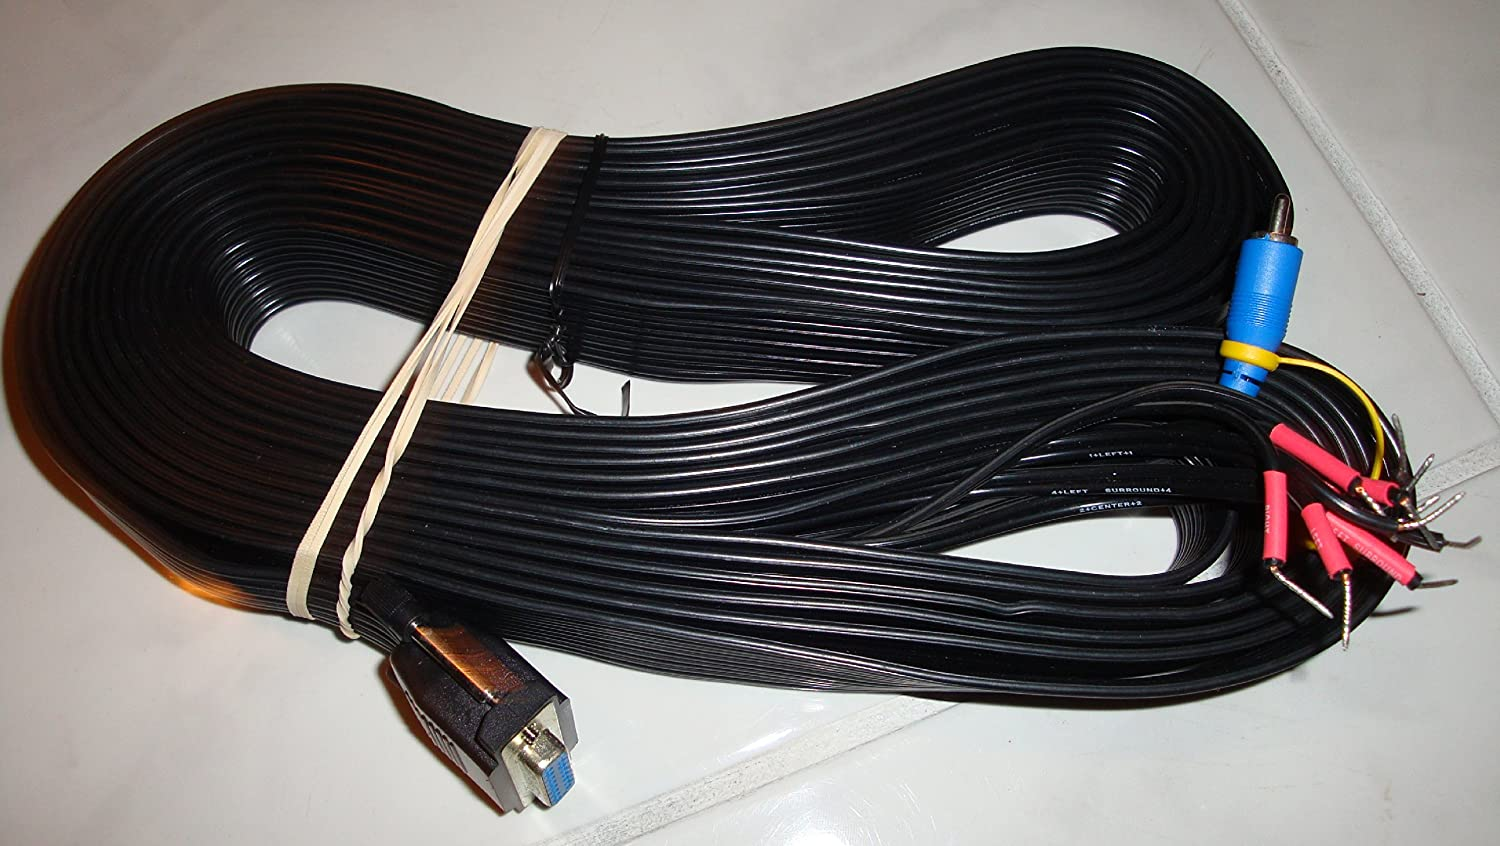 91VP4Uej%2BCL._SL1500_ amazon com bose audio cable 15 pin from subwoofer to receiver  at aneh.co